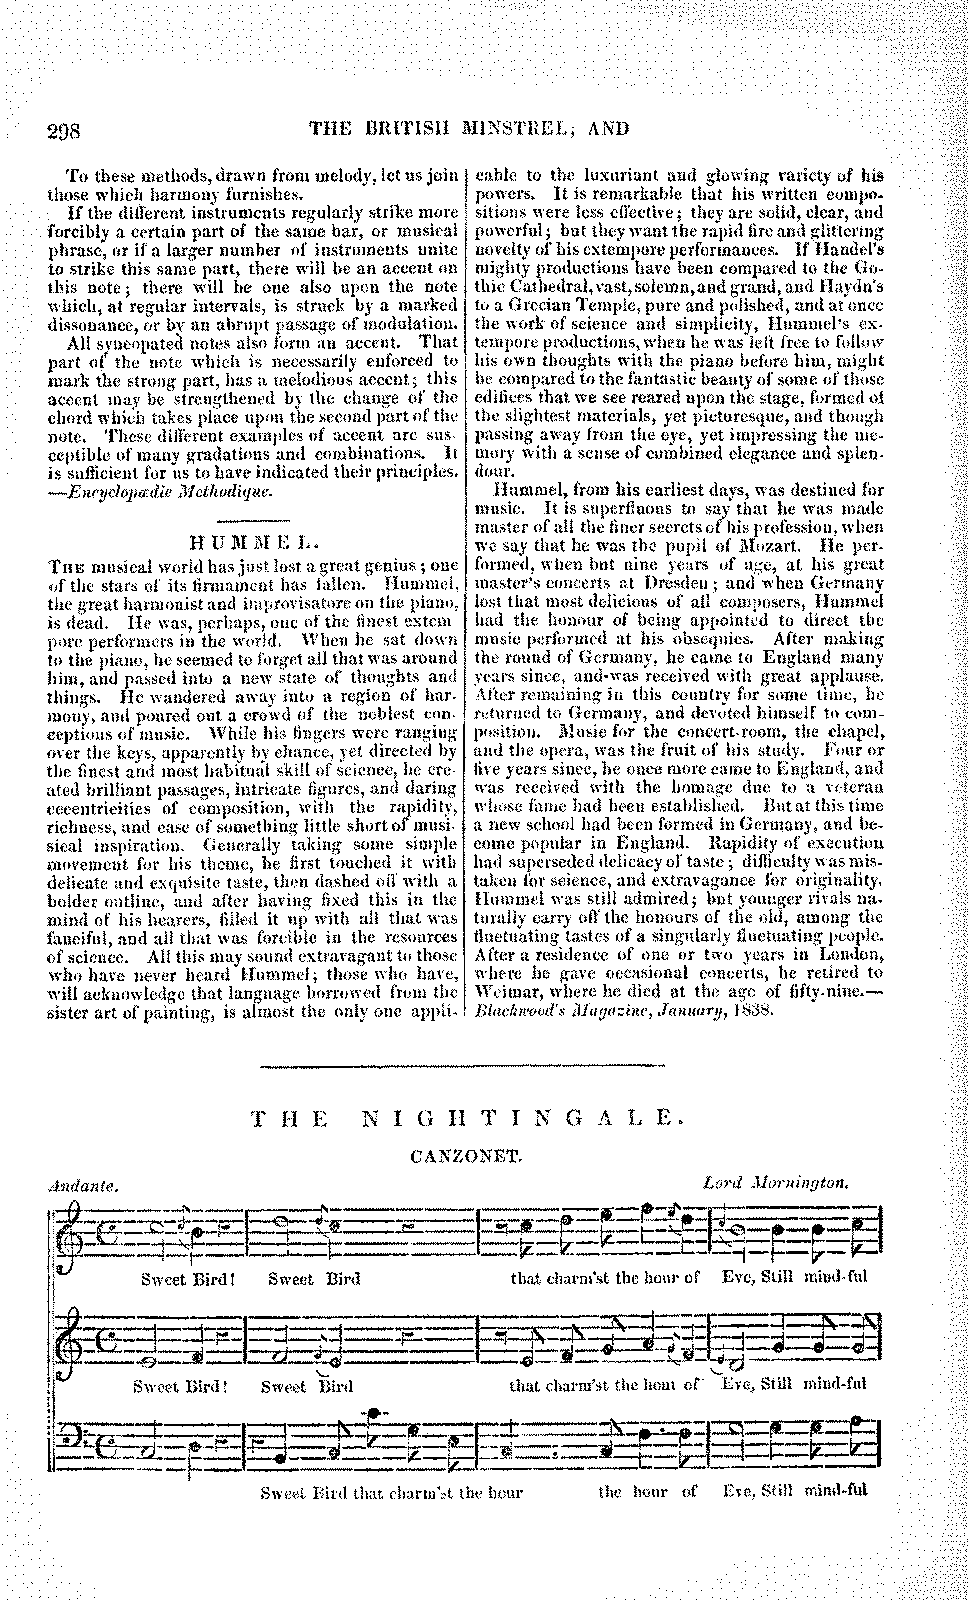 PMLP218380-mornington nightingale britishminstrel 1.pdf